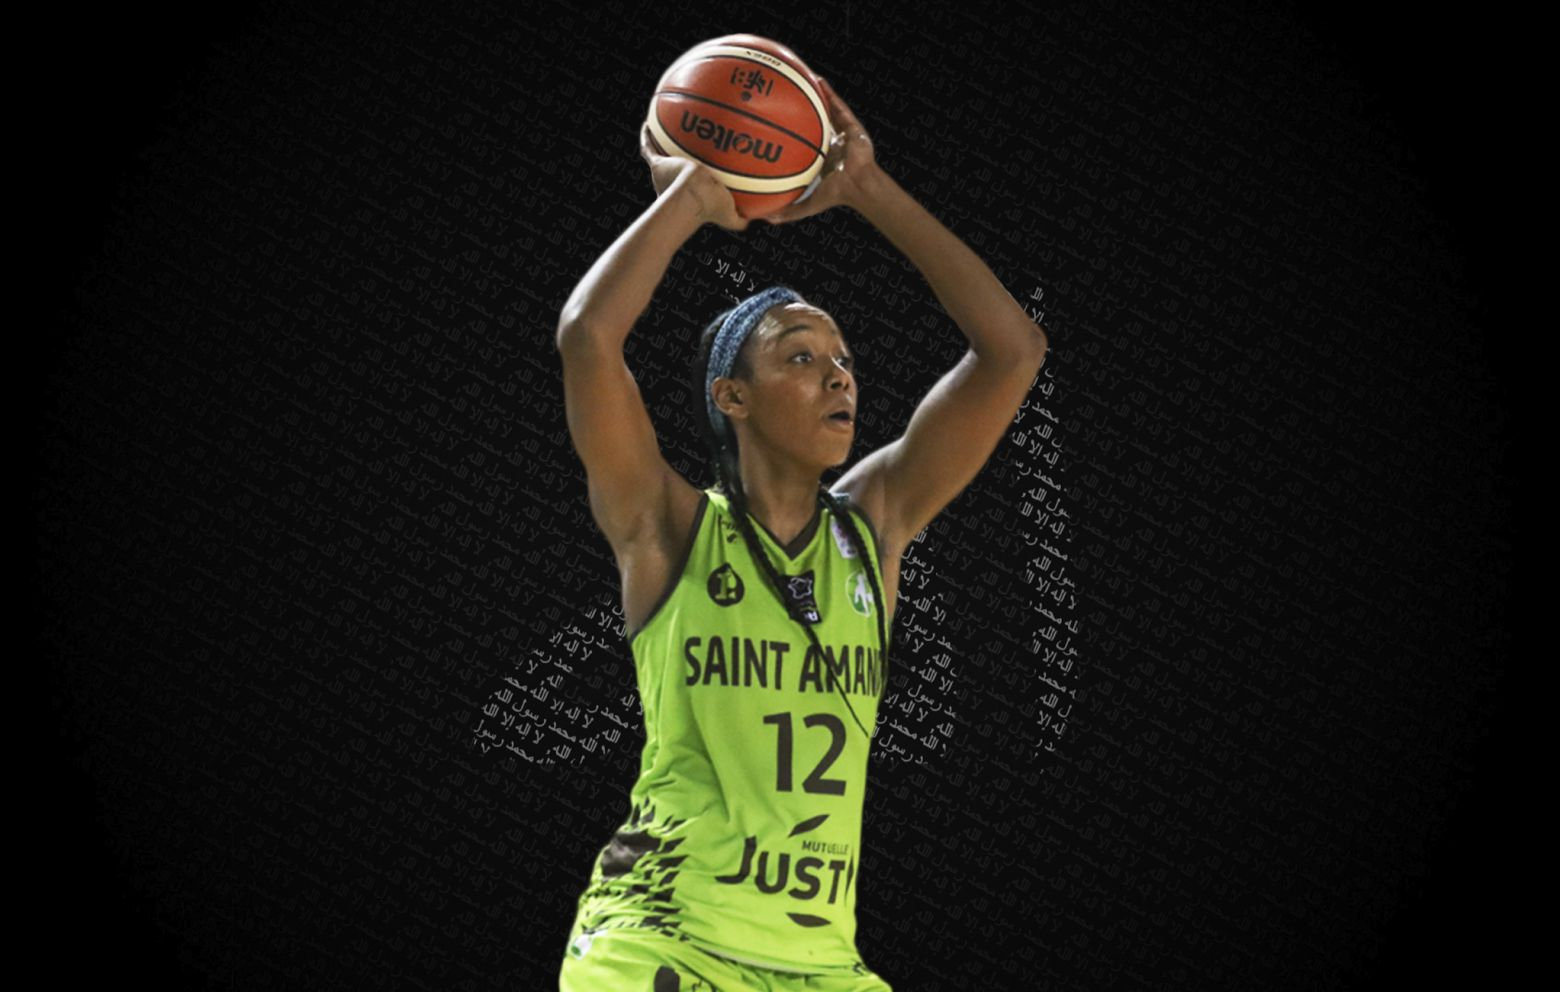 PORSHA ROBERSTS has signed with Regeneracom Sports